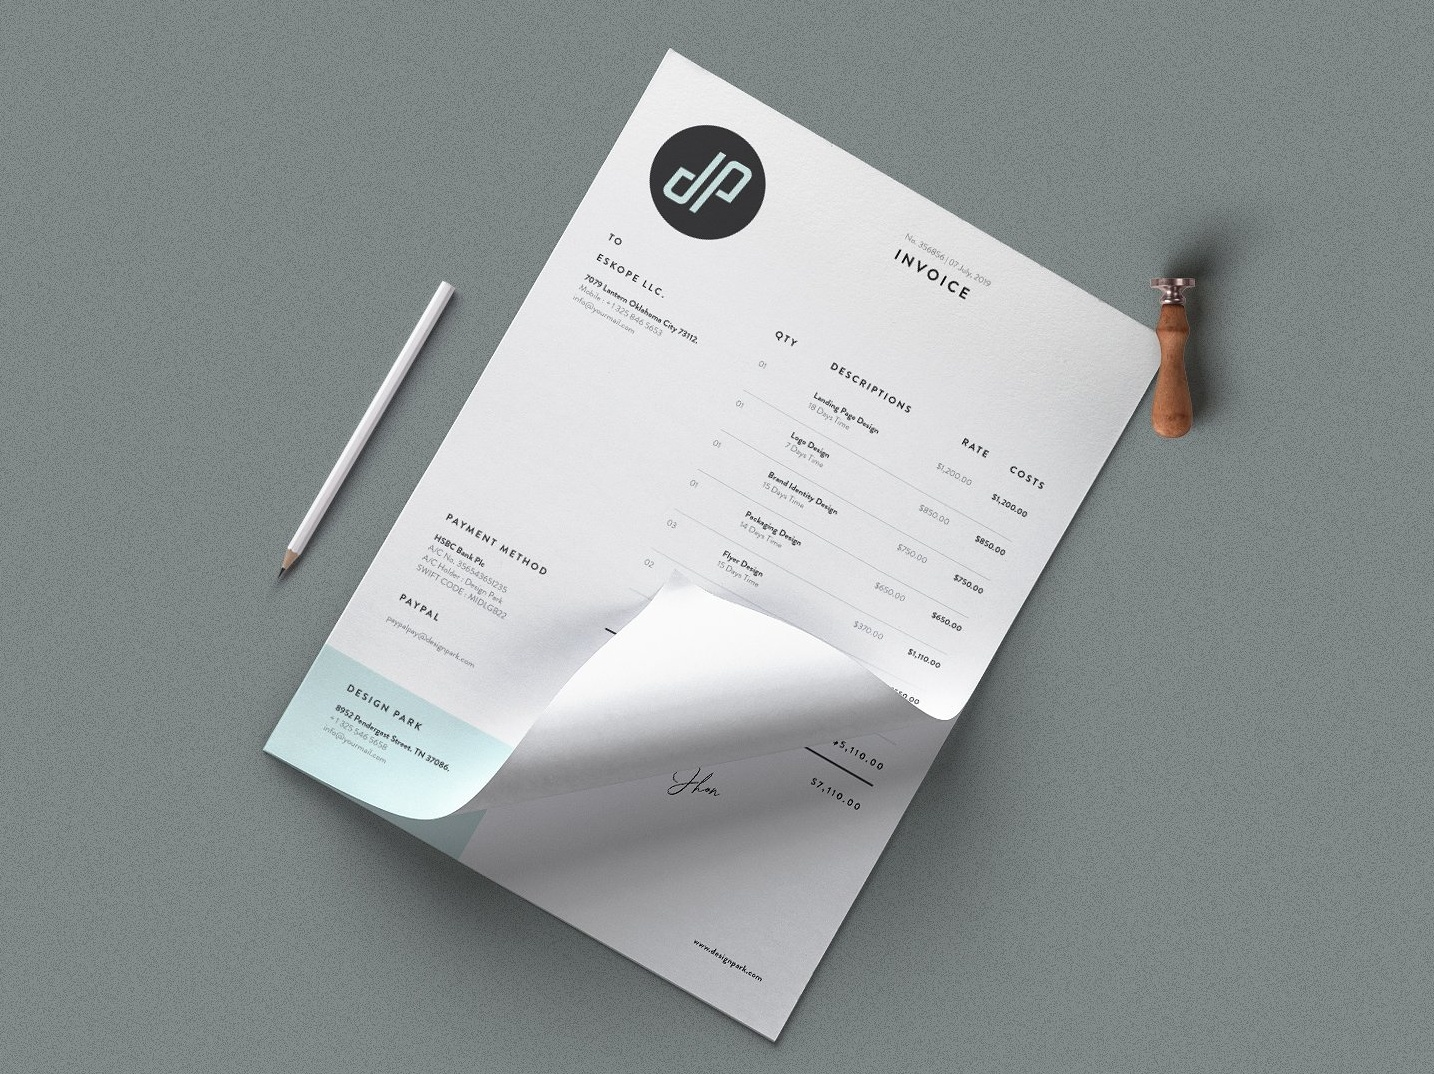 Minimalist Invoice By Social Media Templates On Dribbble